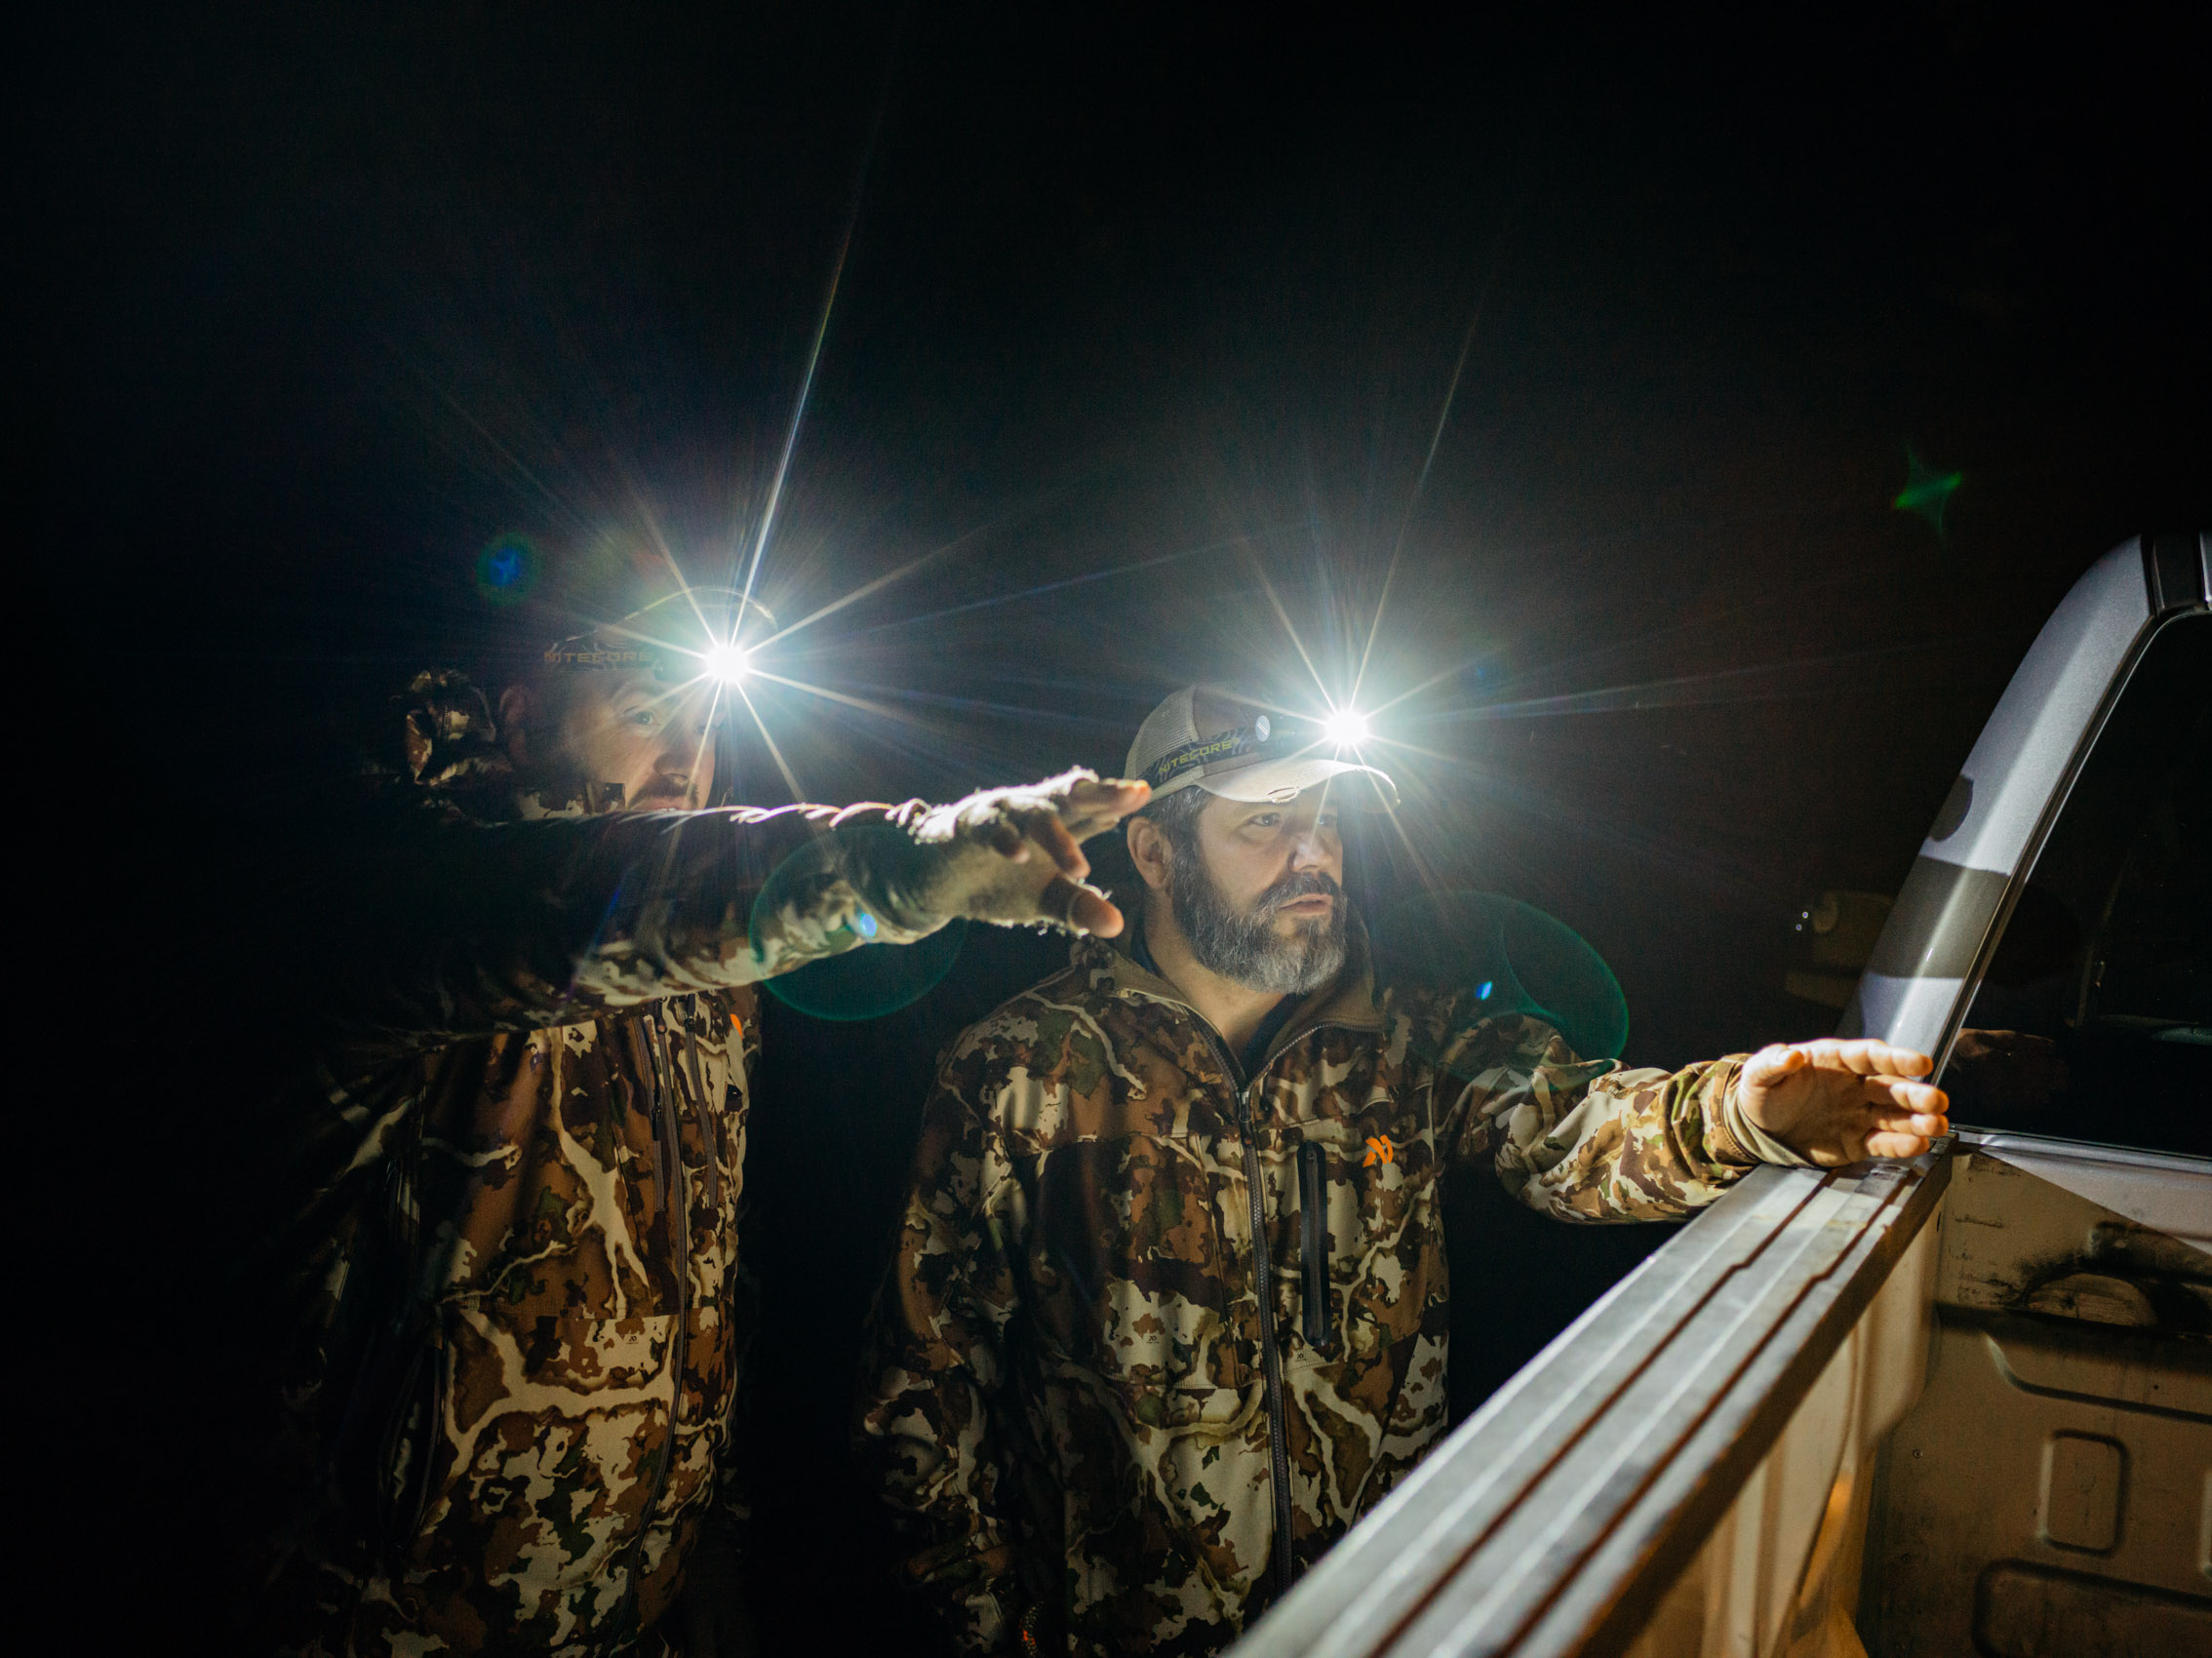 Deer Hunters at night with headlamps planning their hunt